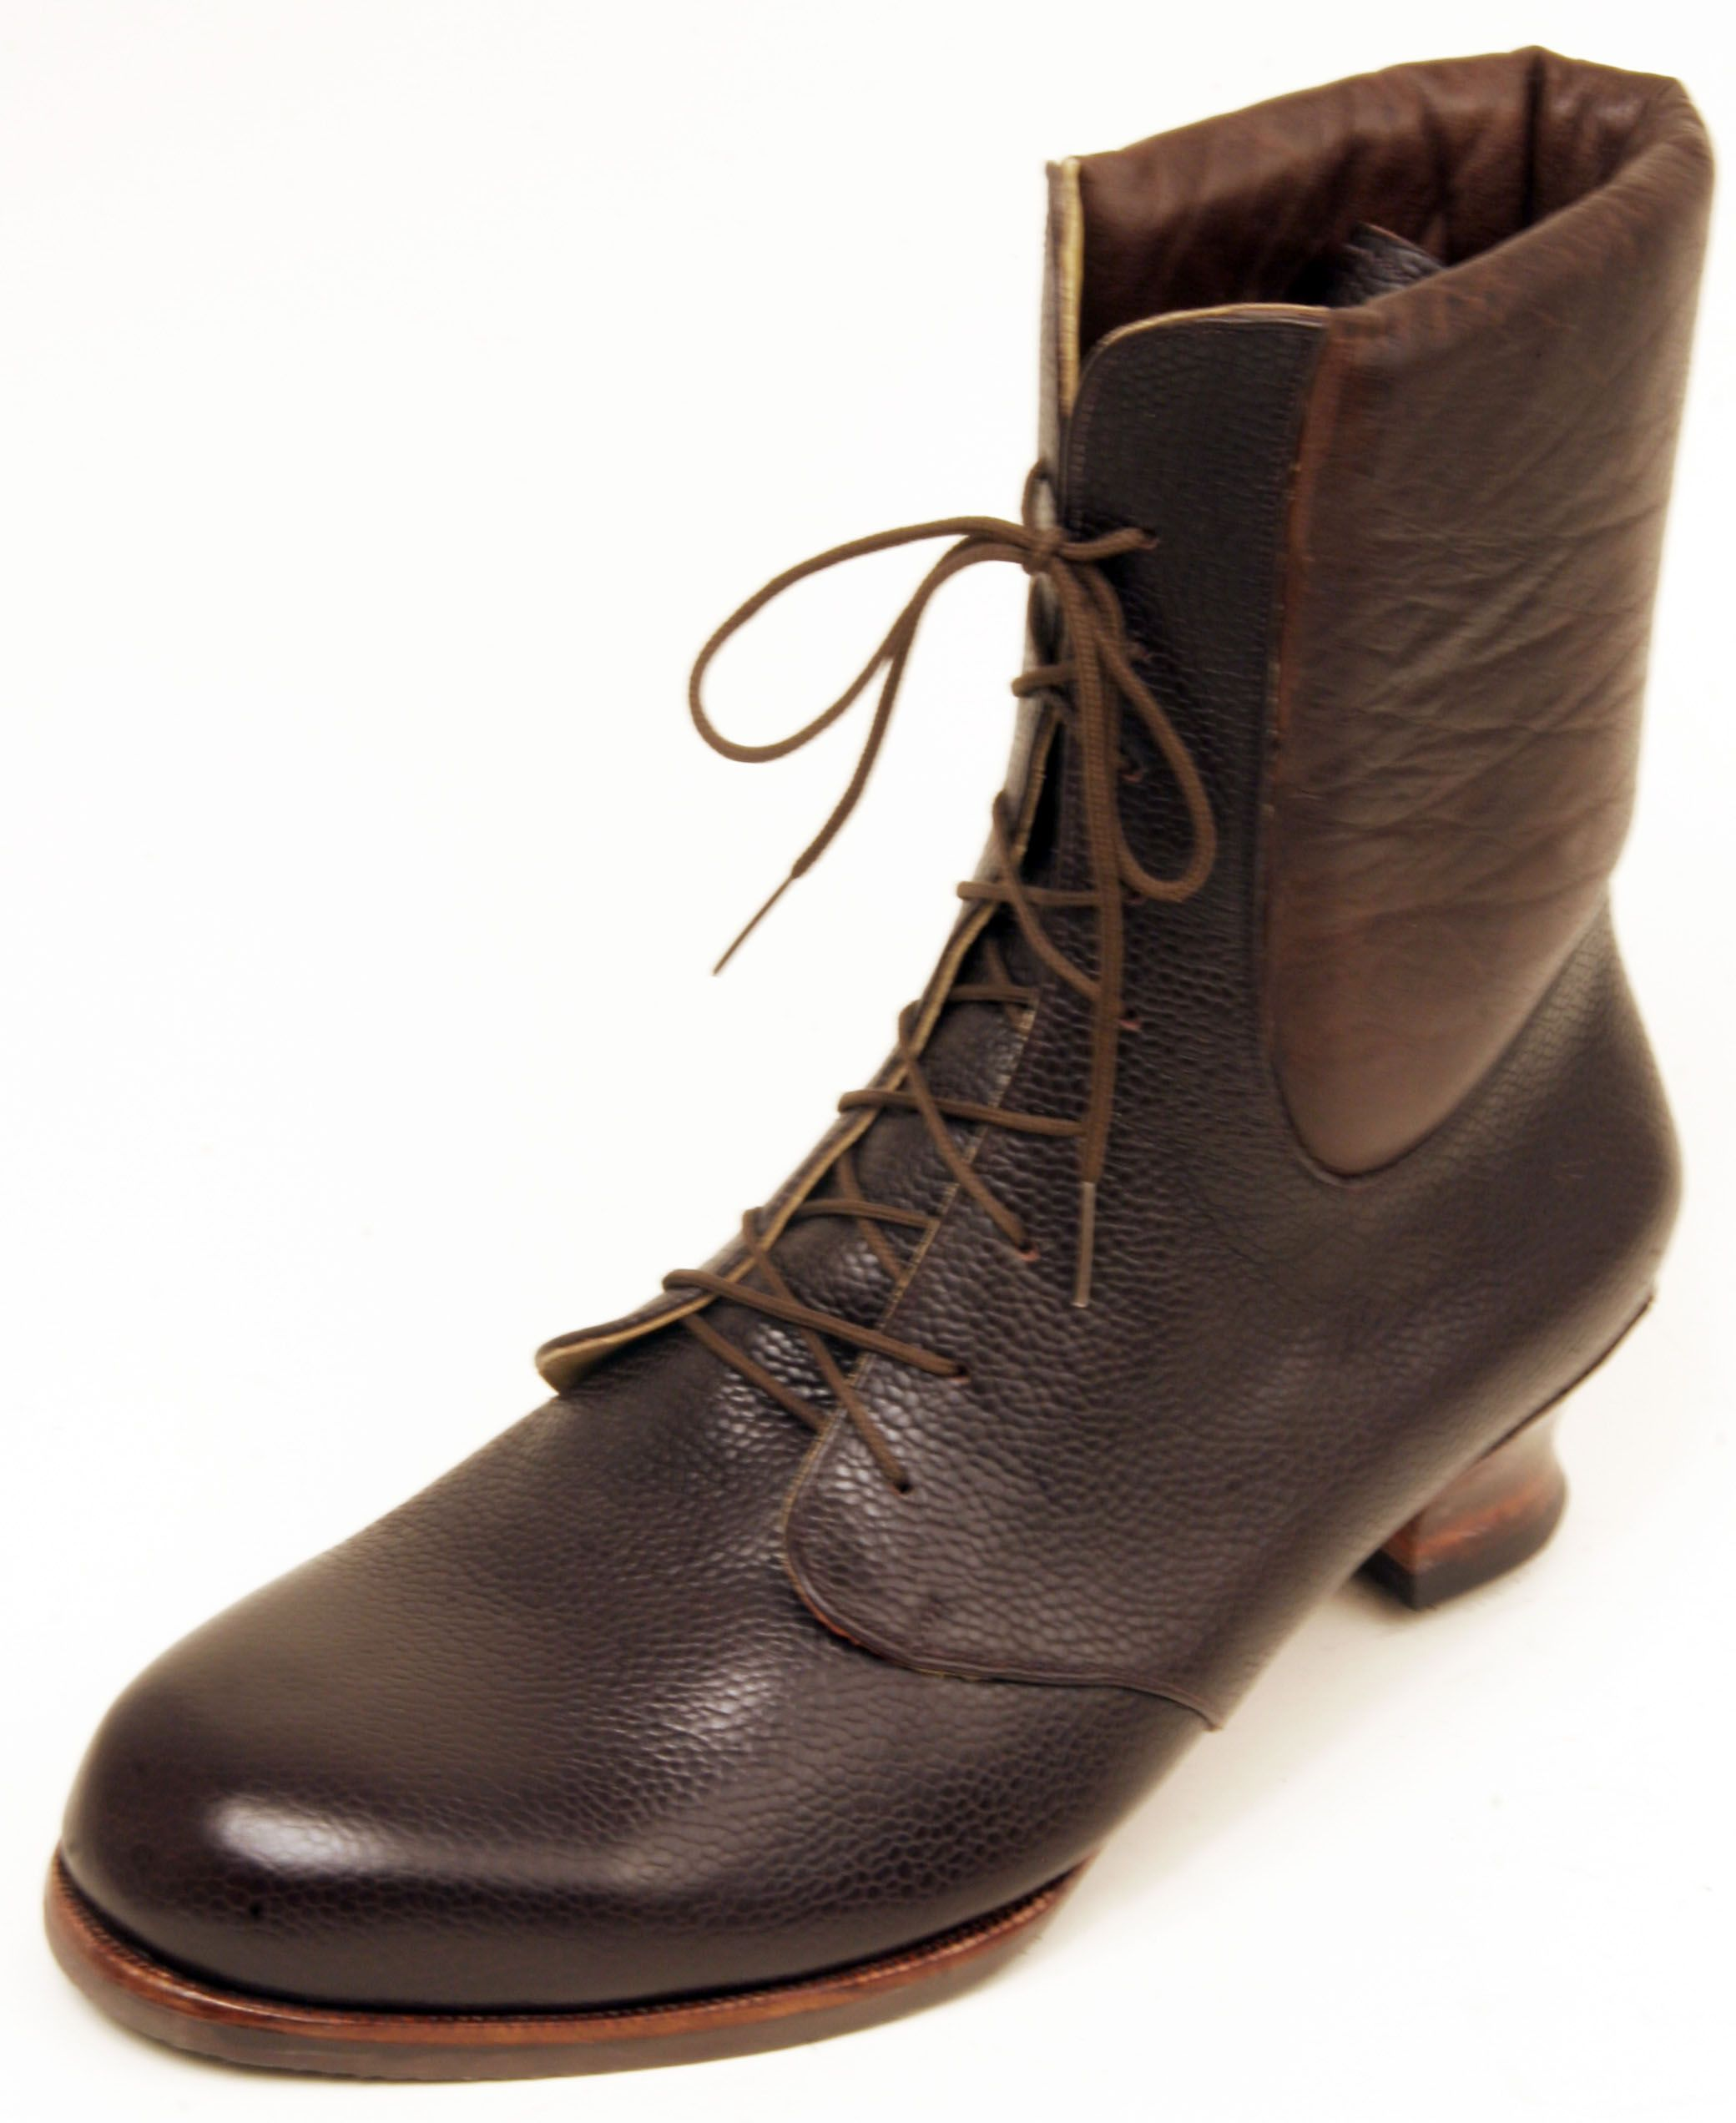 Womens Laced Ankle Boots | Bespoke shoemaker, made to measure shoes and boots